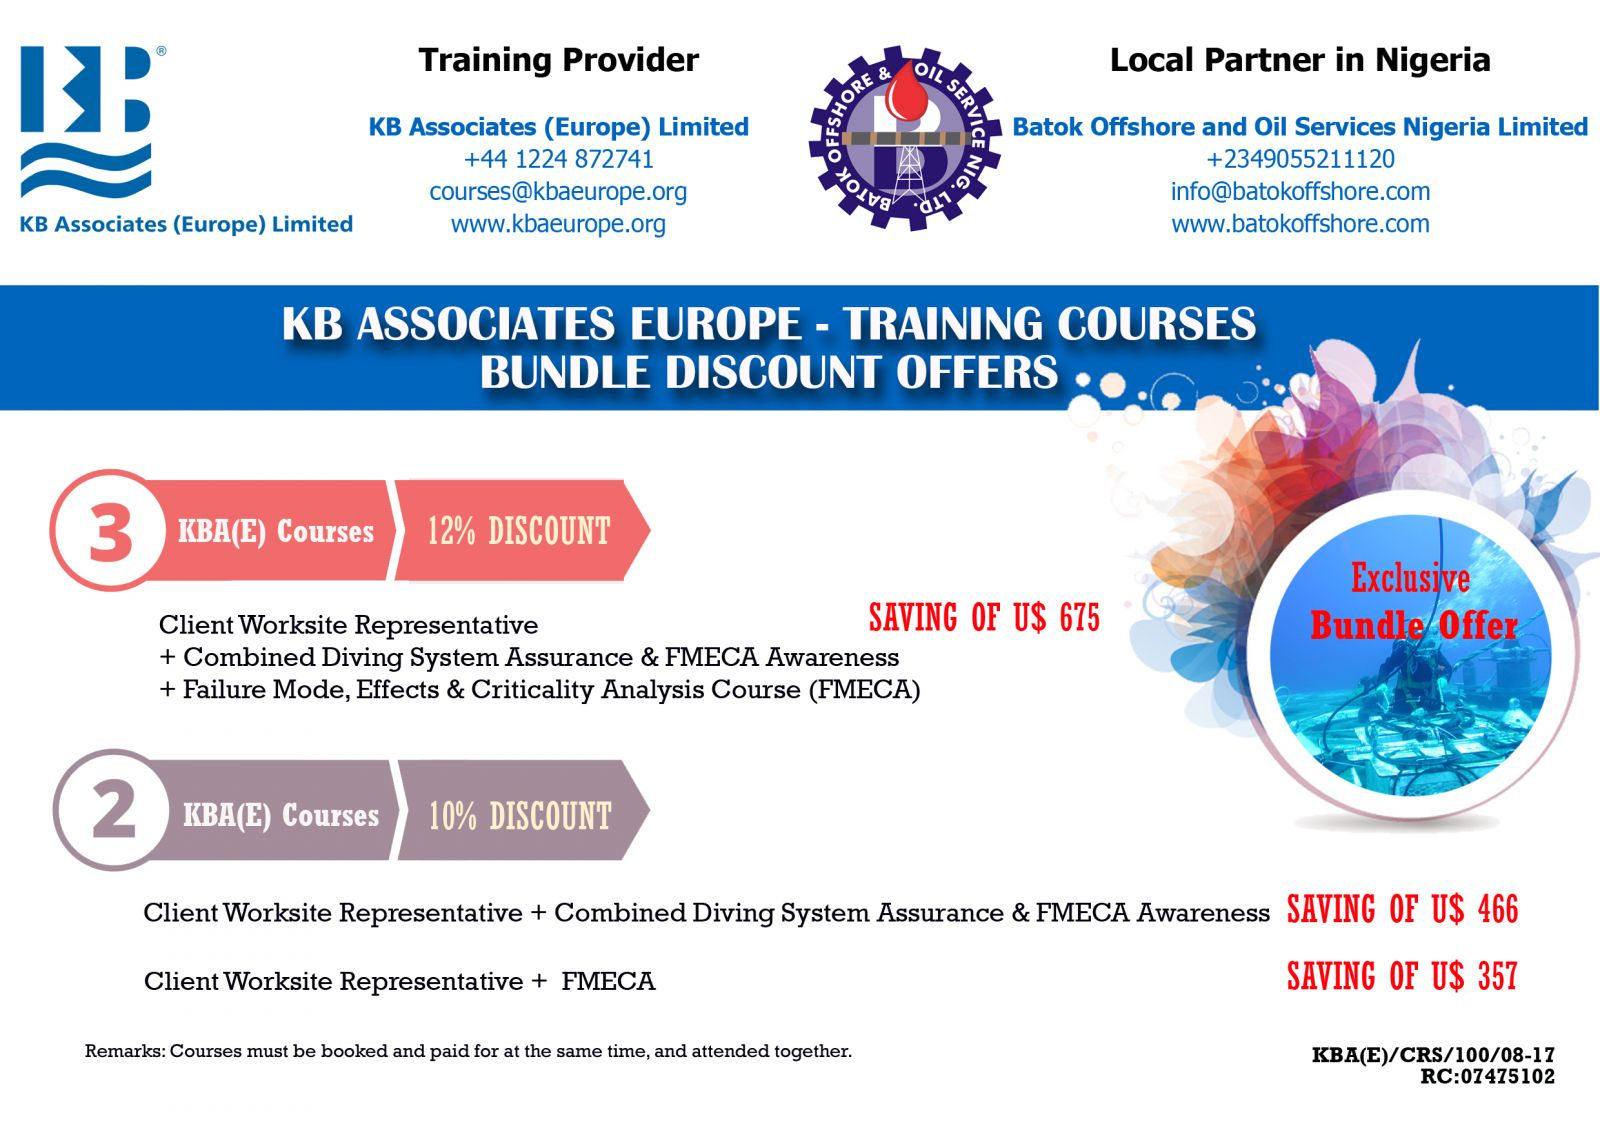 KBA(E) Training Courses - Bundle Offers (Exclusive for Courses in Nigeria)